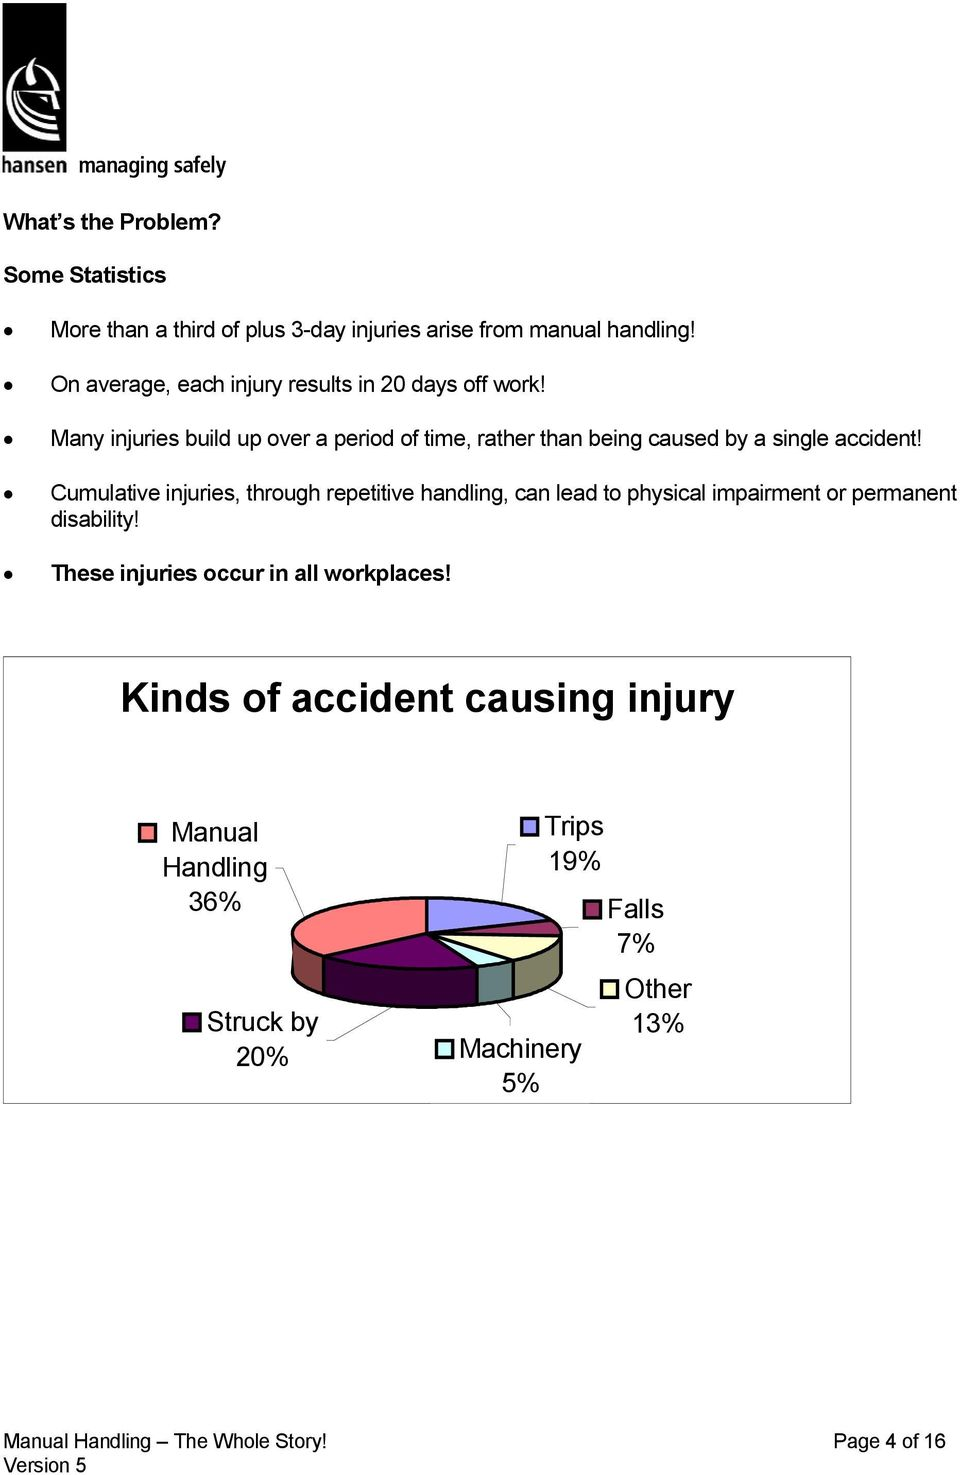 Many injuries build up over a period of time, rather than being caused by a single accident!